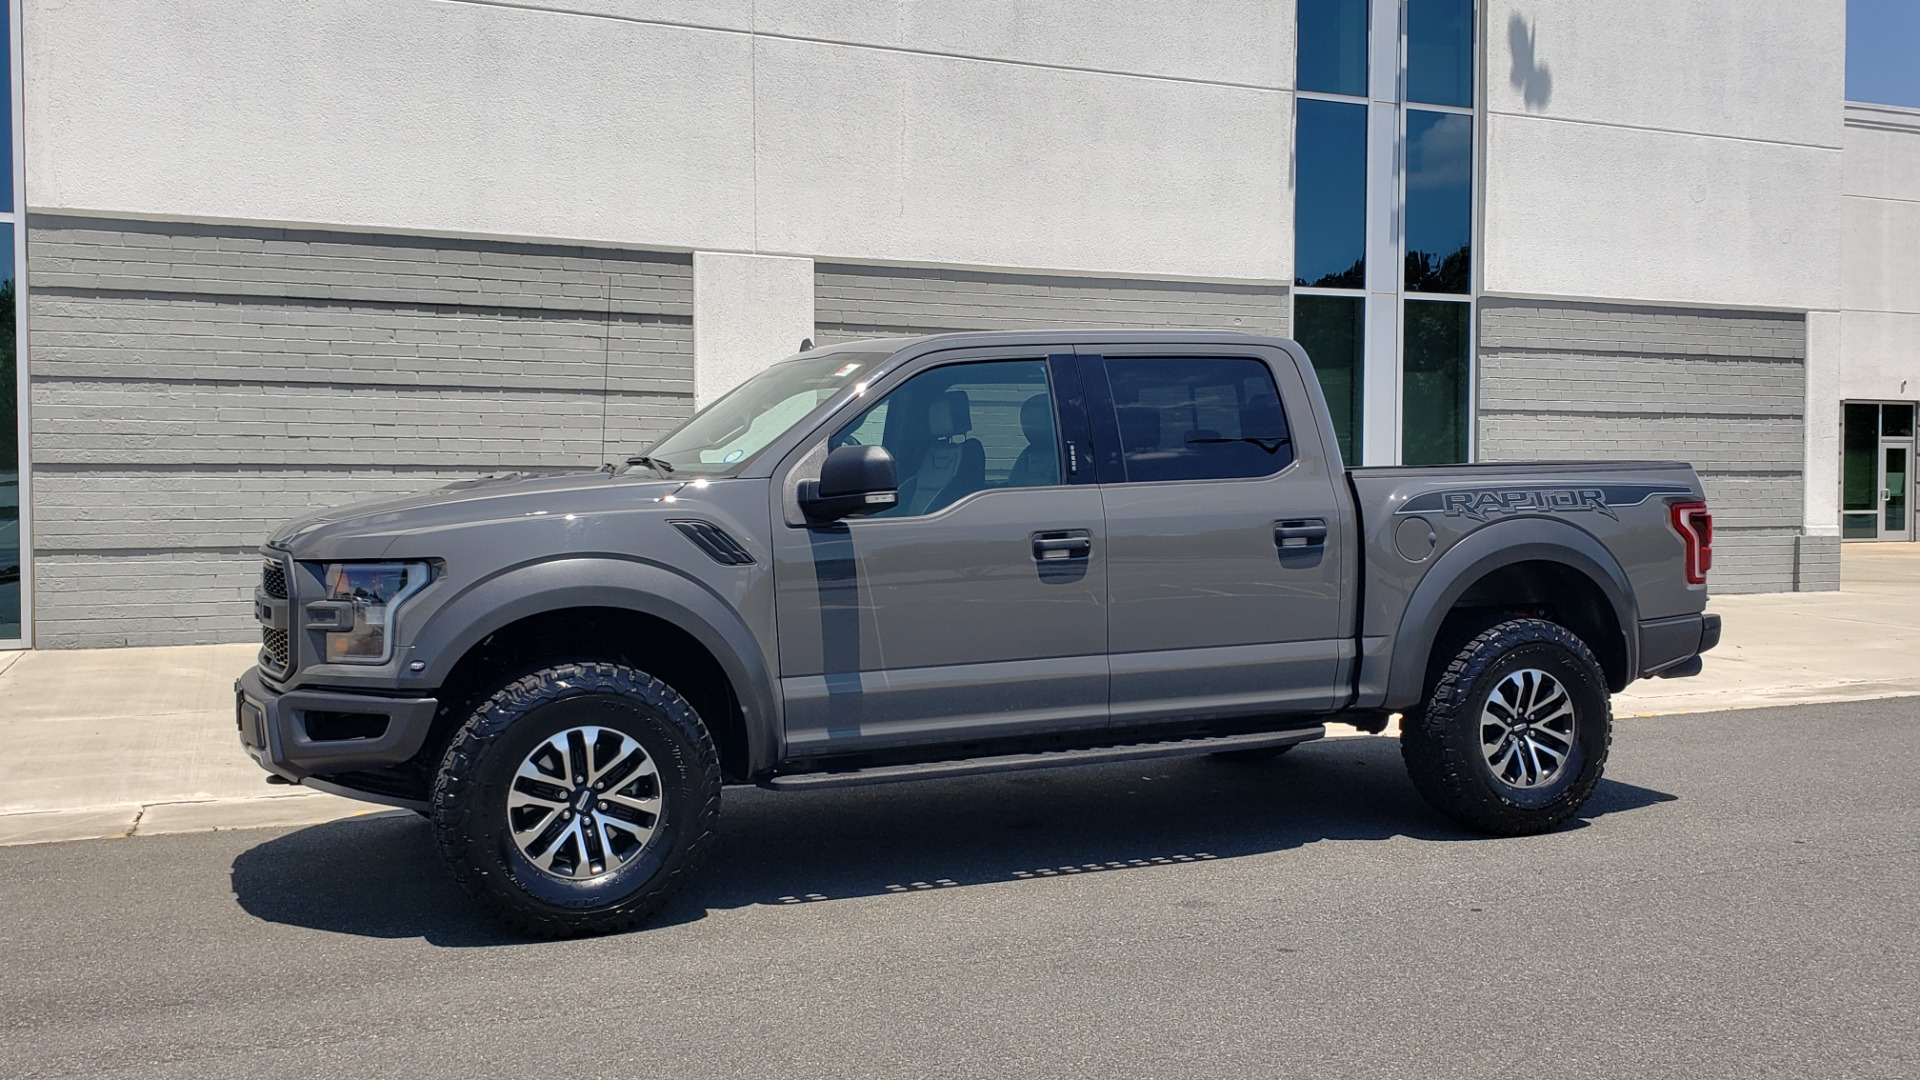 Used 2020 Ford F-150 RAPTOR 4X4 SUPERCREW / 3.5L ECOBOOST / 10-SPD AUTO / SUNROOF / REARVIEW for sale $82,500 at Formula Imports in Charlotte NC 28227 4